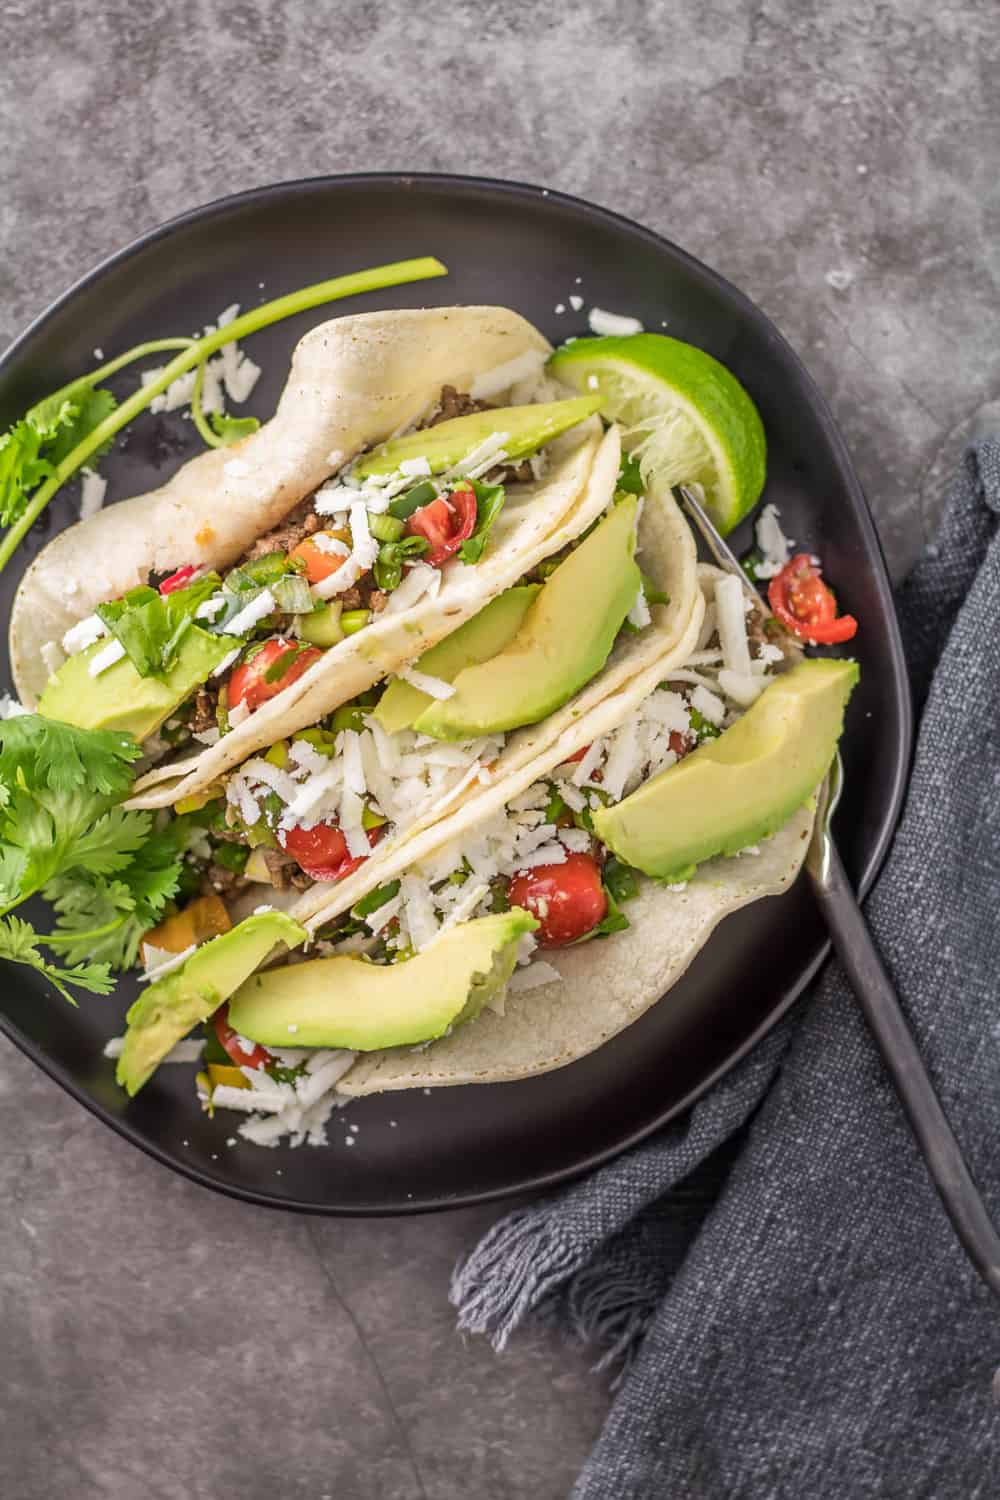 Gluten free Easy Ground Lamb Tacos featuring spiced ground lamb, salsa, cotija, avocado on a black ceramic plate with a black fork and grey napkin.